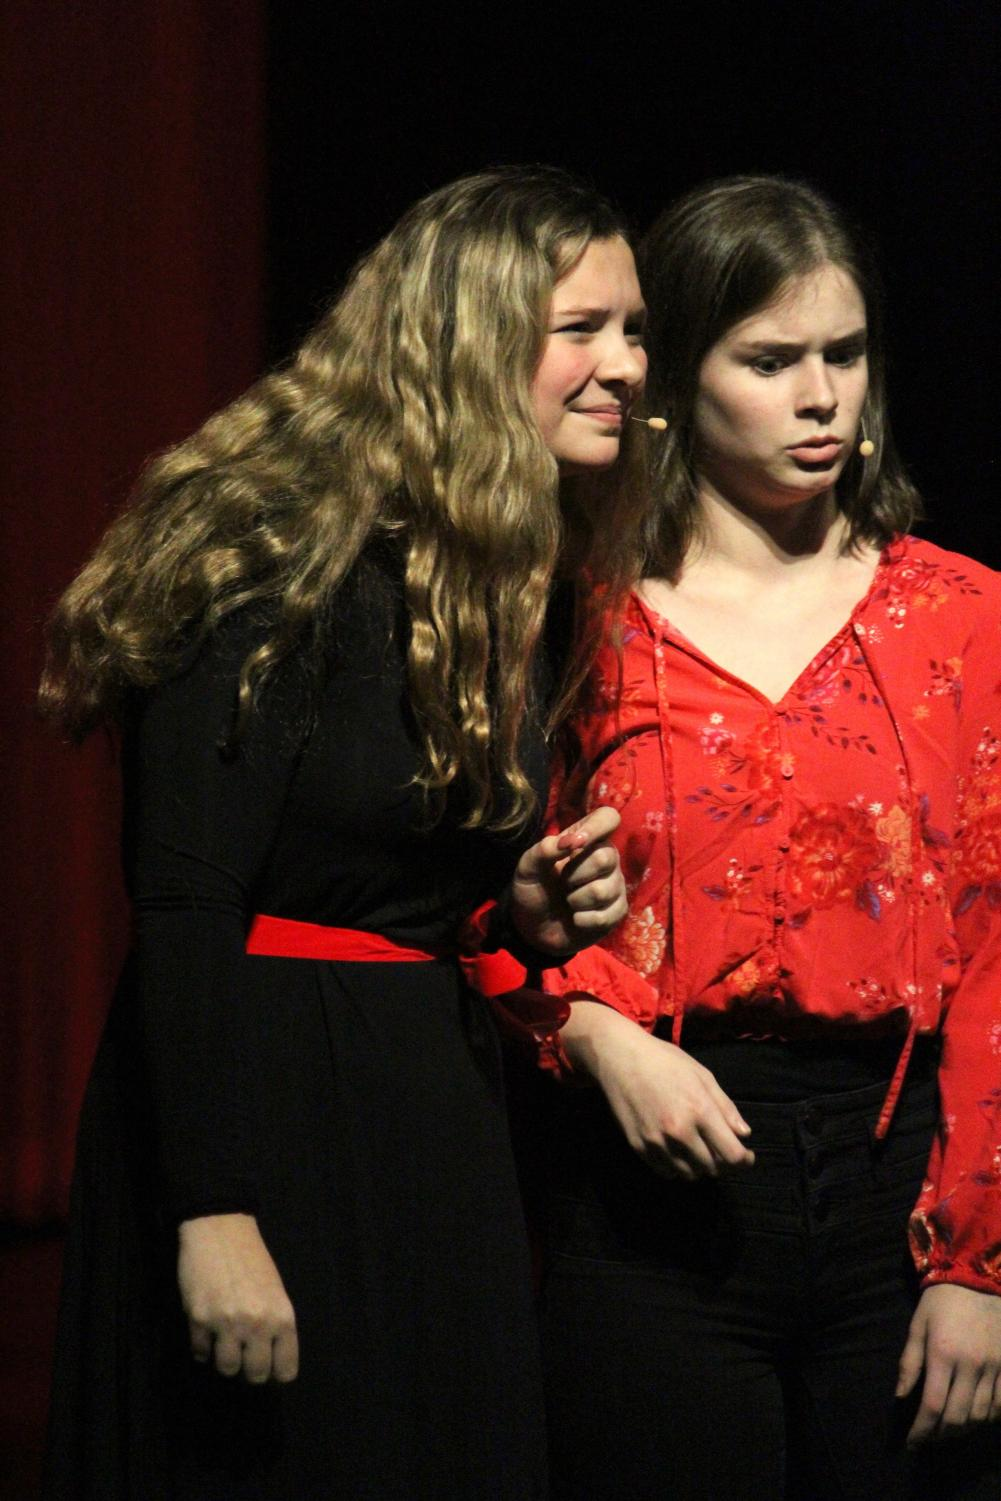 (Photo By: Sydney Jarrard). Harley Ansbro and Jen Vincent's performance of Anything you can do from Annie get your gun. We never got to find out who was better, but the performance was amazing.